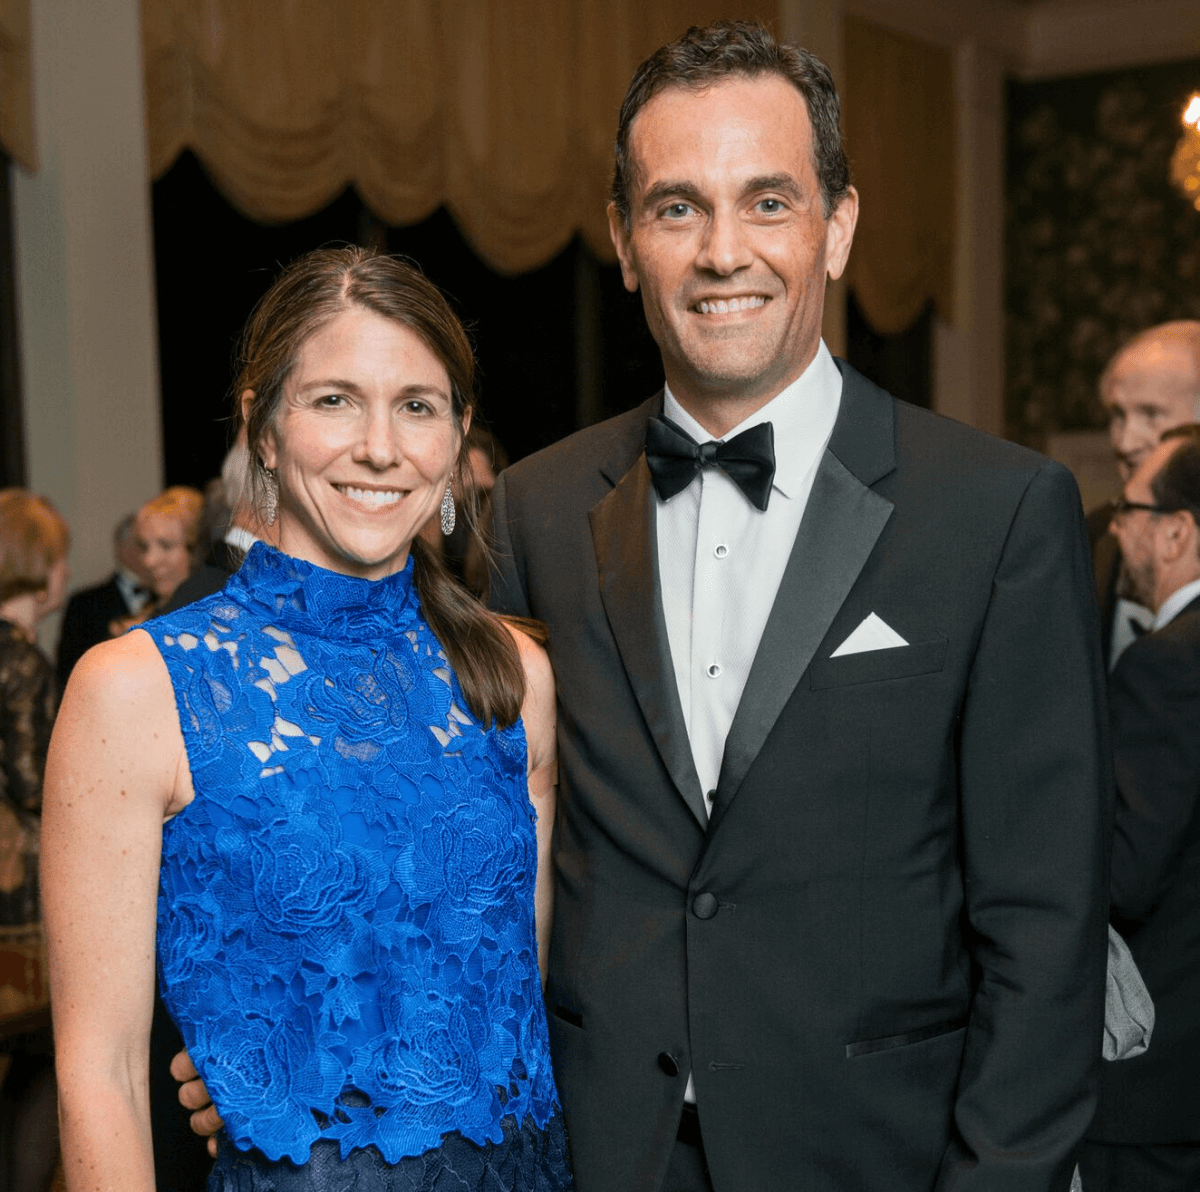 Jill and Joe Karlgaard at Rice Honors Gala